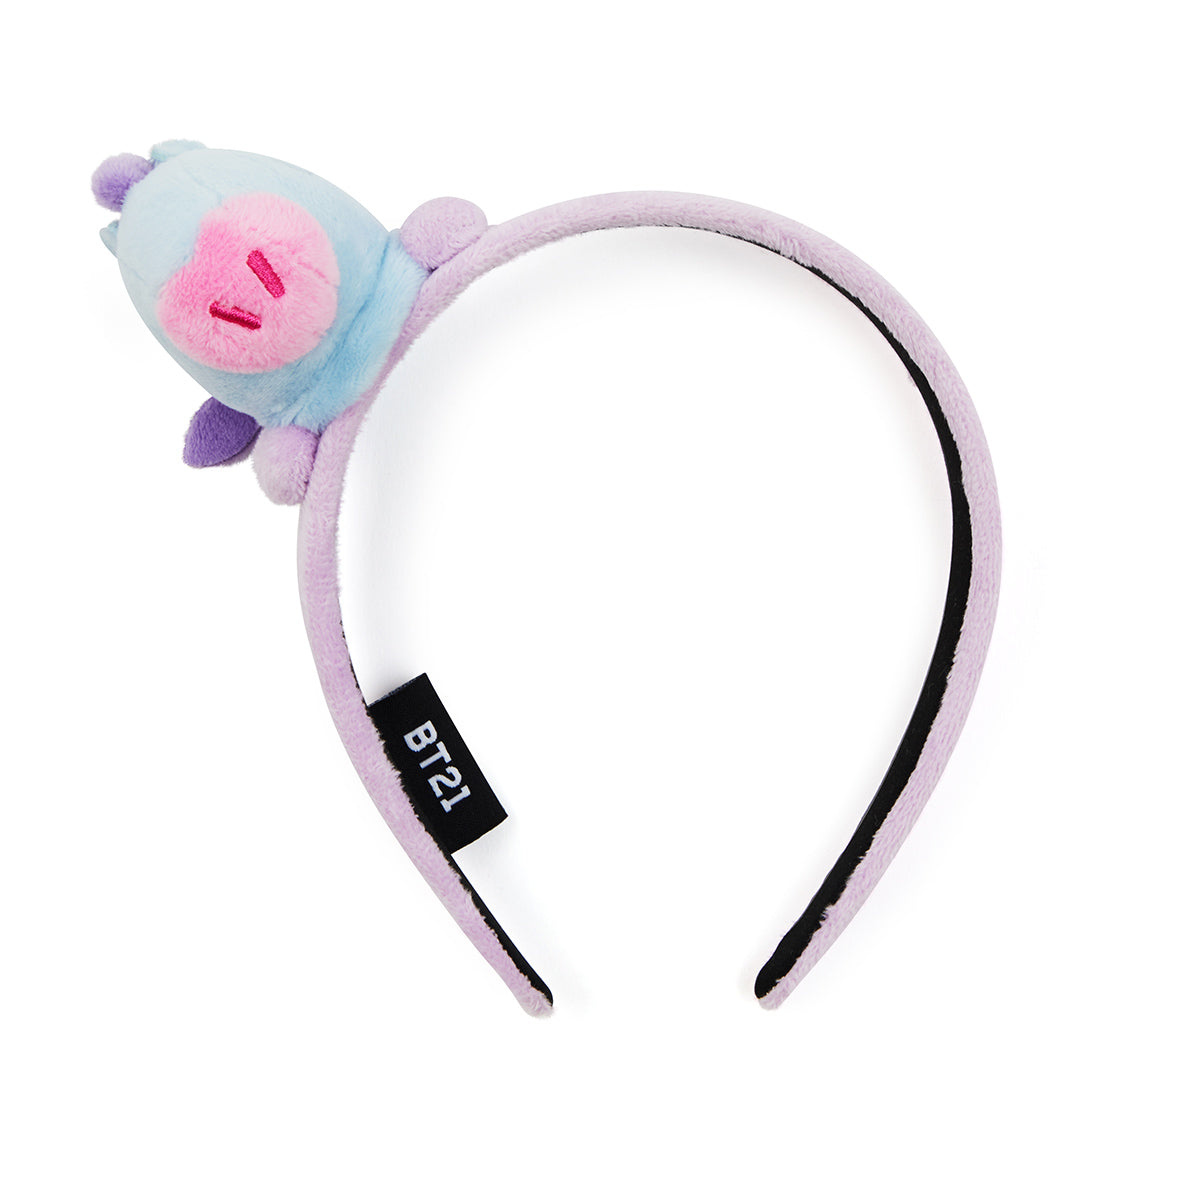 BT21 MANG Baby Headband